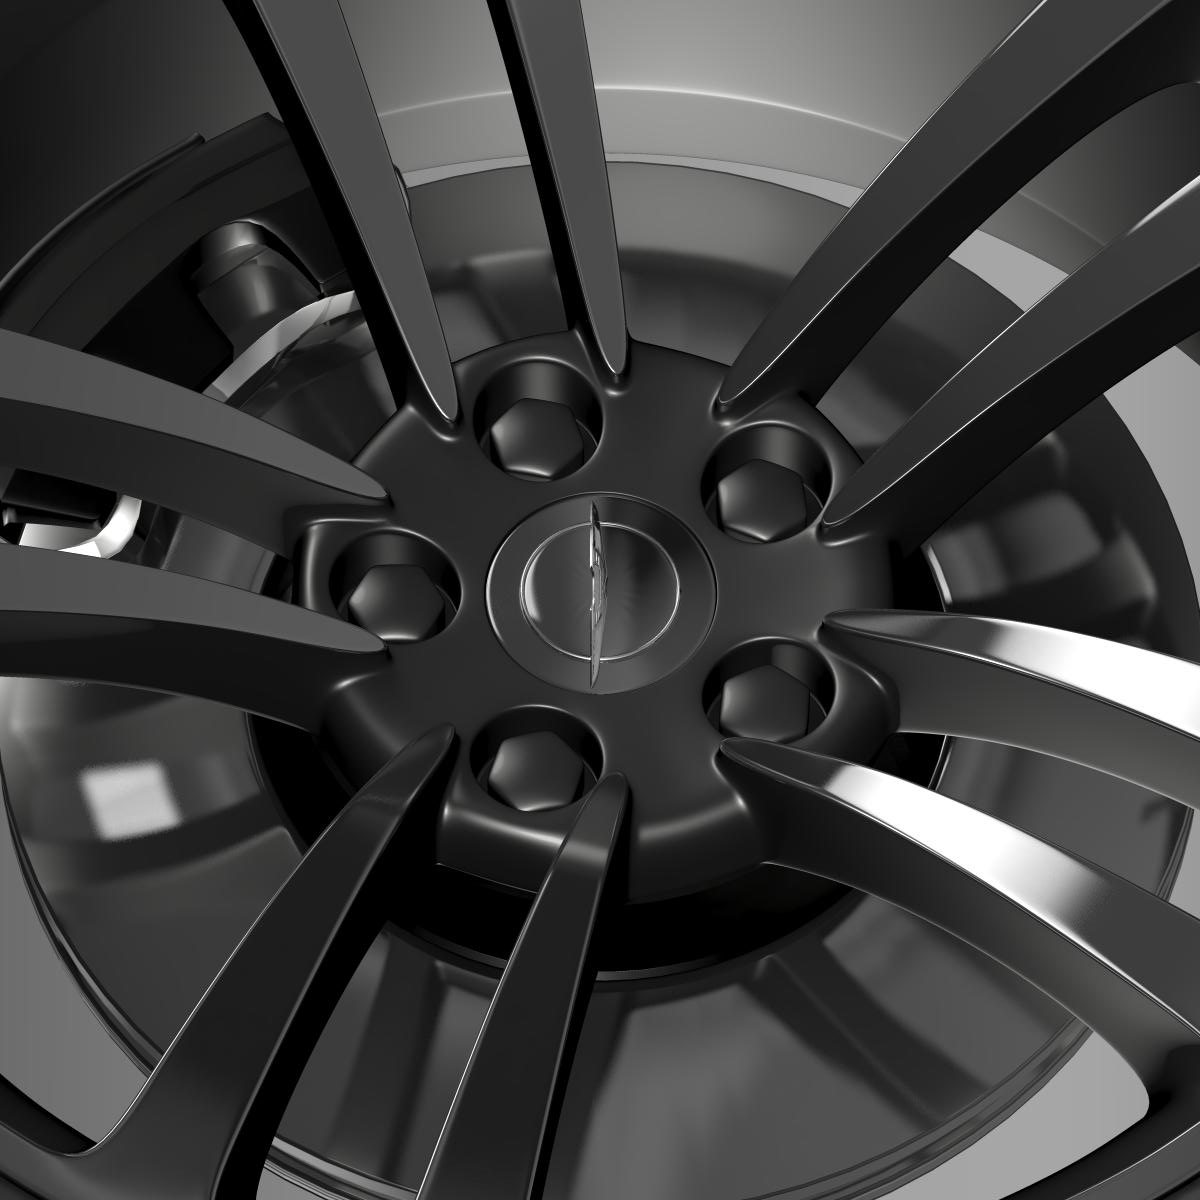 chrysler 300 srt8 core wheel 3d model 3ds max fbx c4d lwo ma mb hrc xsi obj 210631